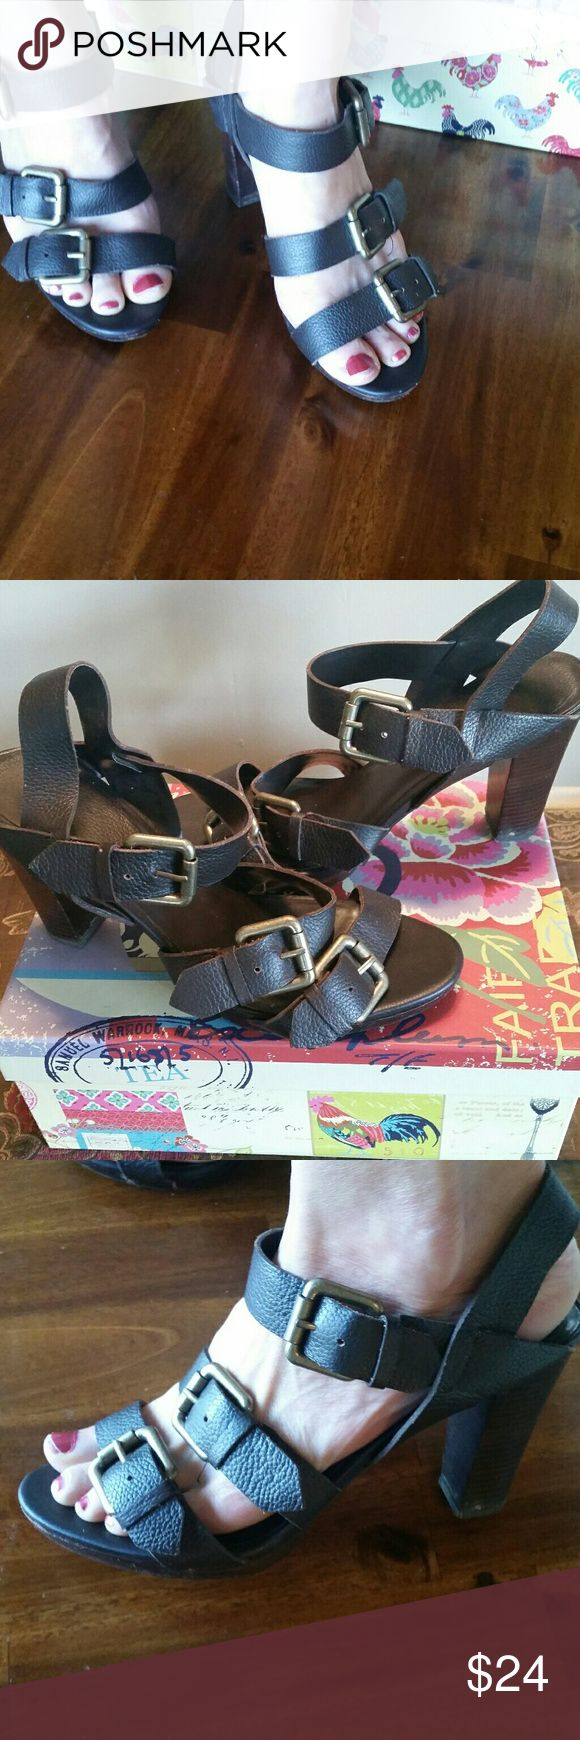 *SALE*Ana high heels Ana leather high heels. Multiple straps and buckles. Very cute. Only worn once! Ana Shoes Heels